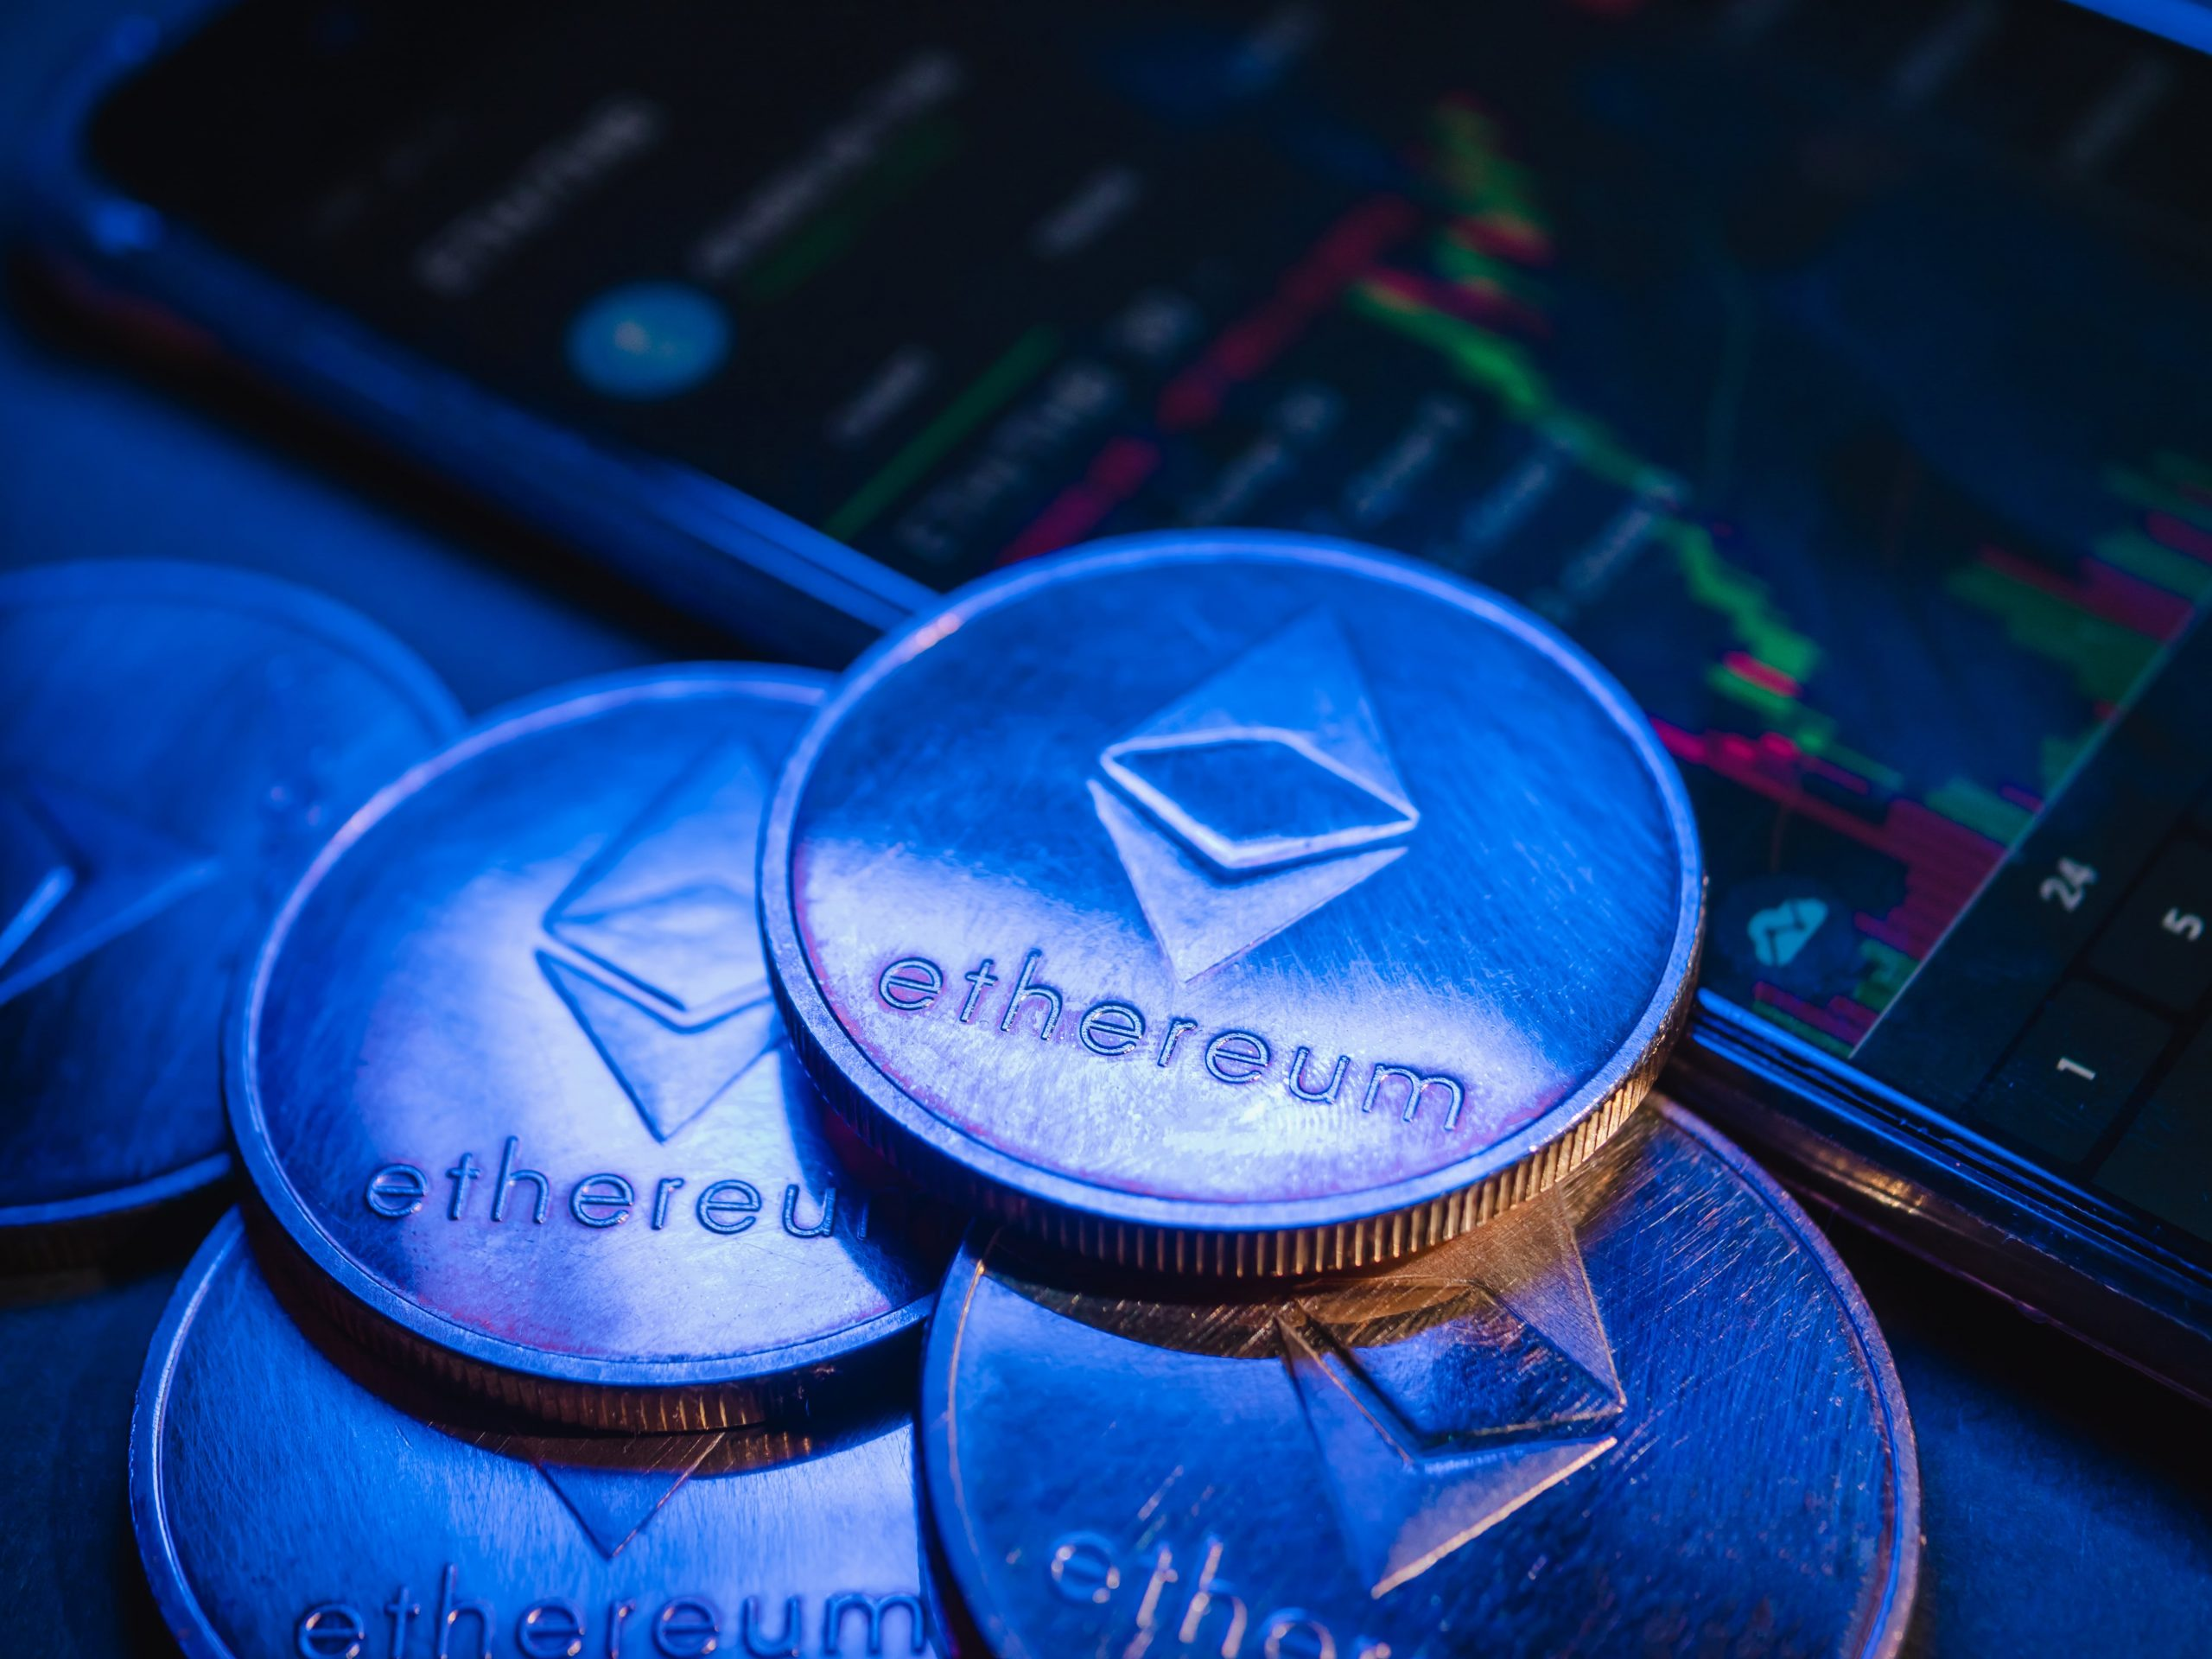 ethereum-coins-with-stock-graph-background-digital-KNXXPEL-min